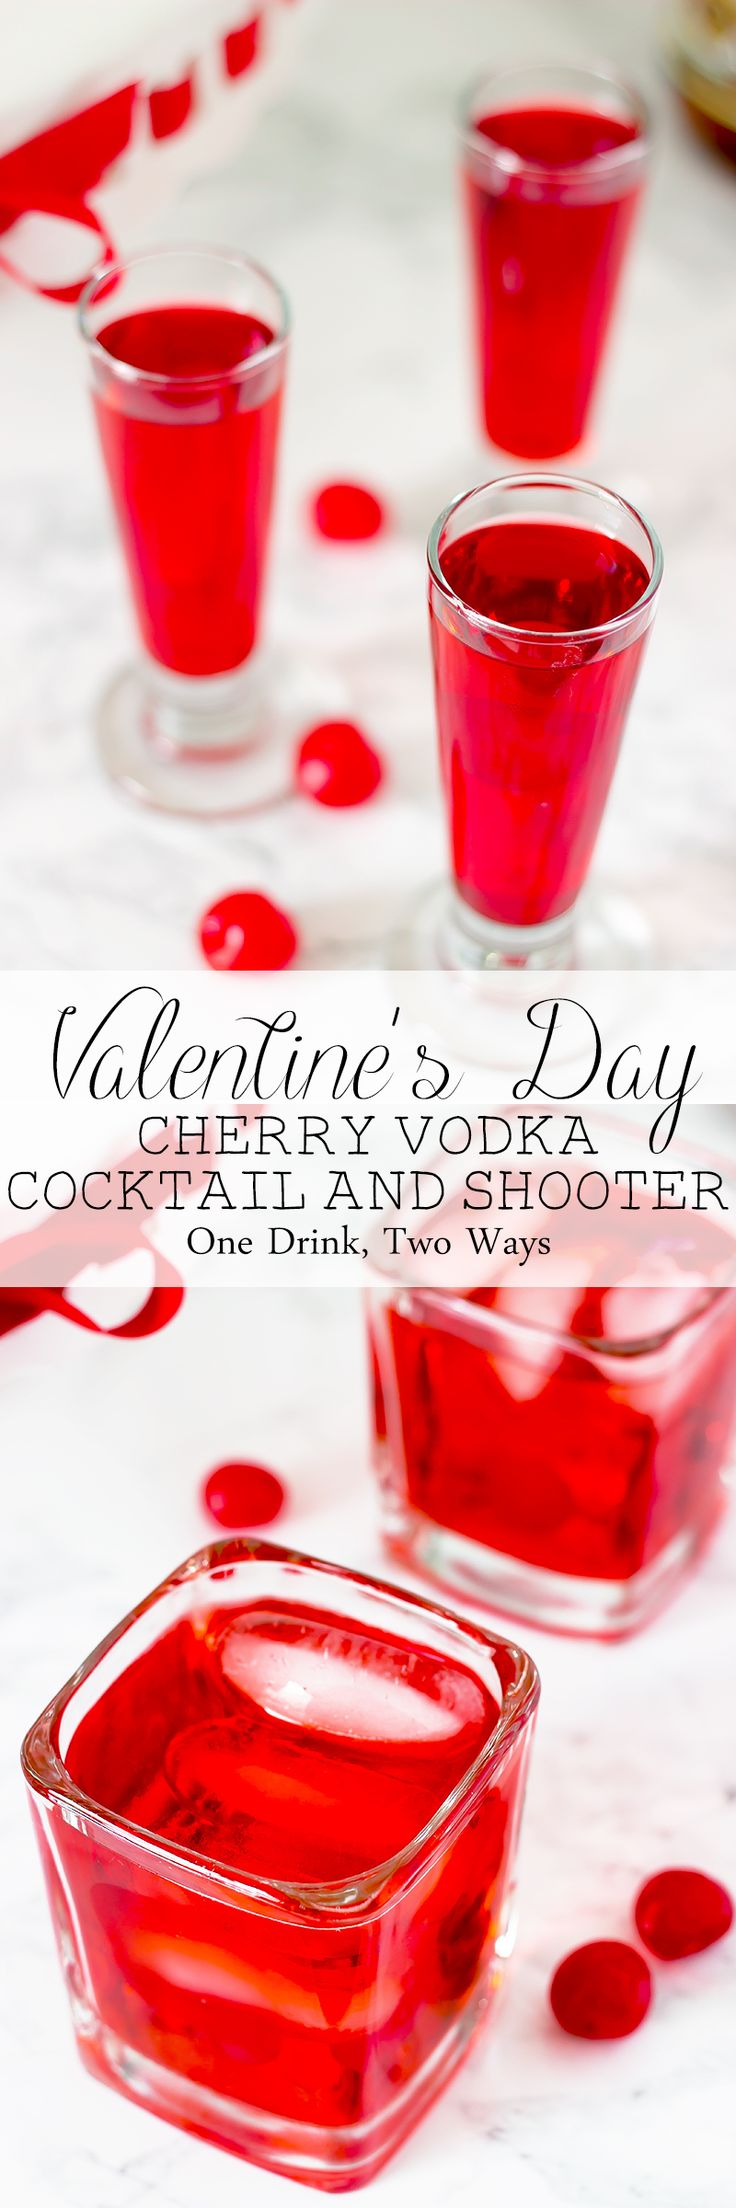 Valentine's Day Cocktail and Shooter --- This Cherry Vodka Cocktail & Shooter is the perfect drink combo for a red Valentine's Day.